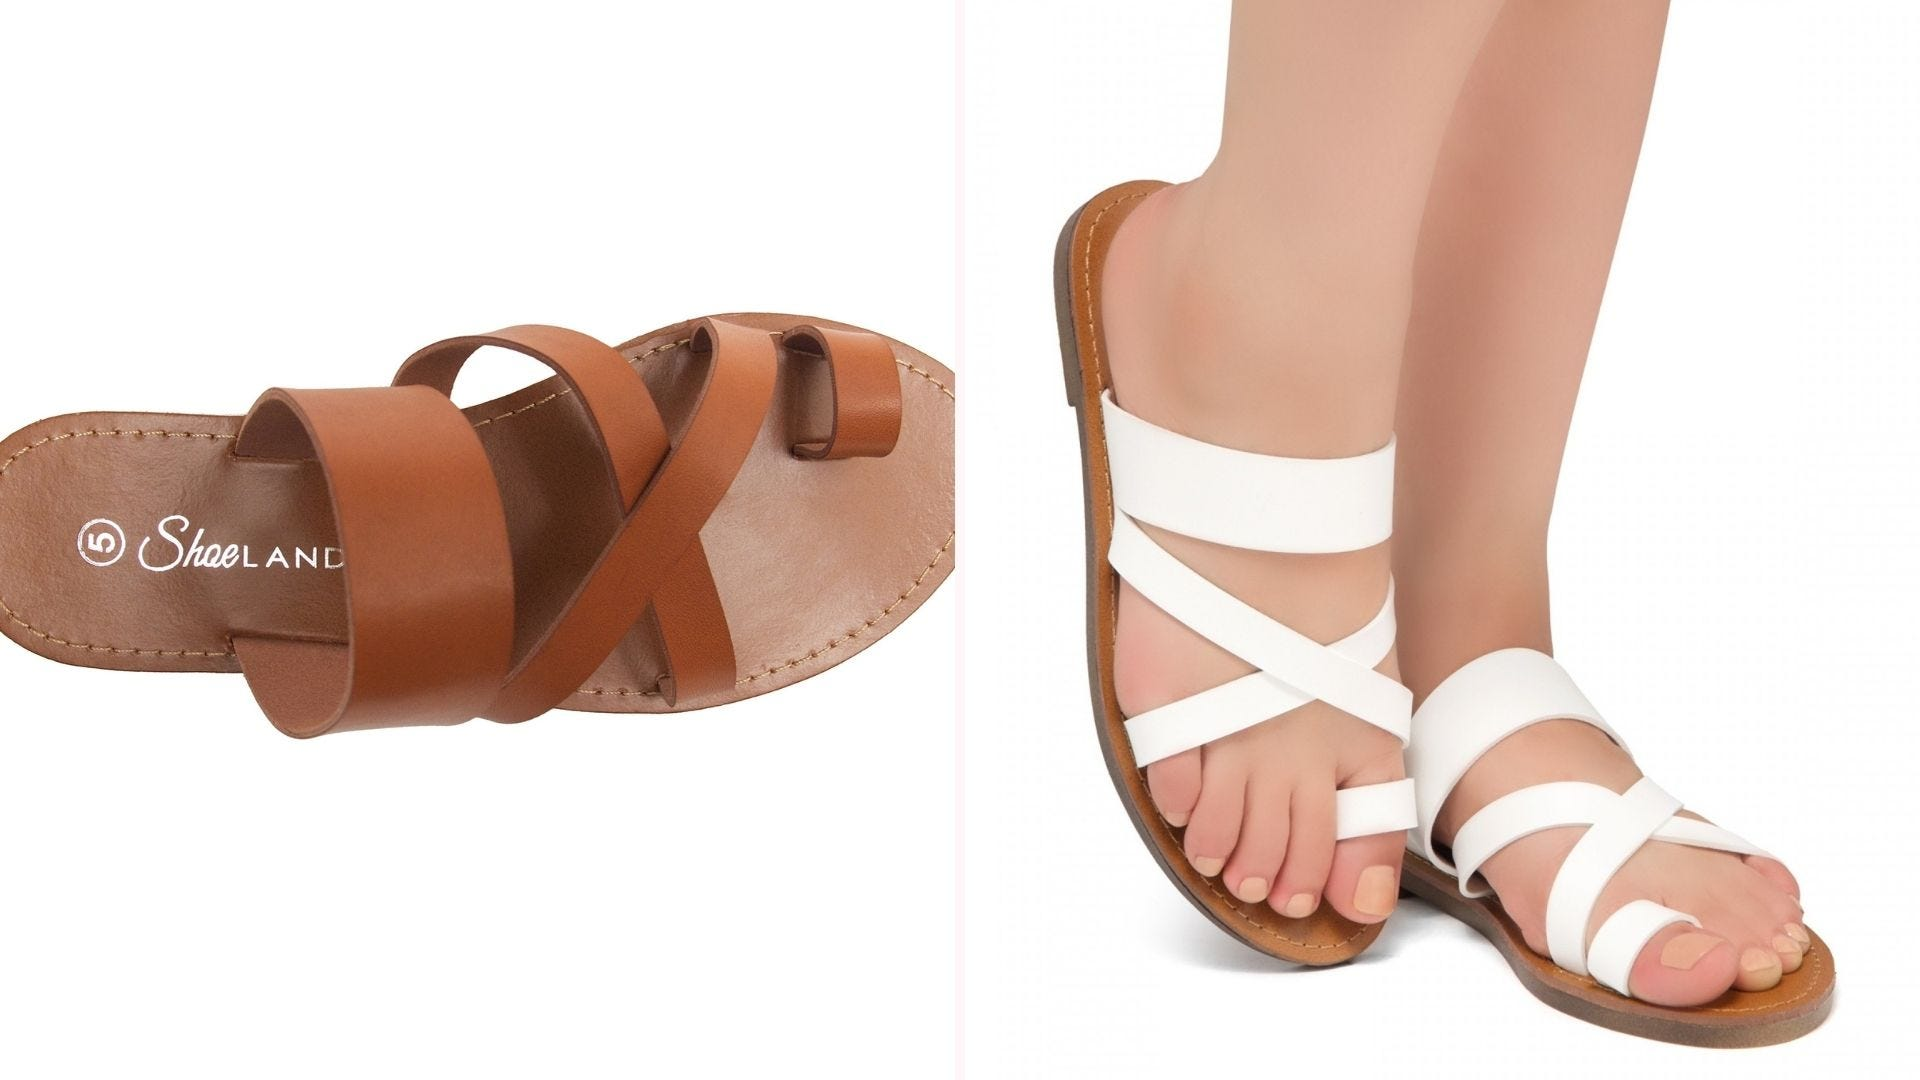 A cognac-colored sandal seen from above; a pair of feet wearing white sandals